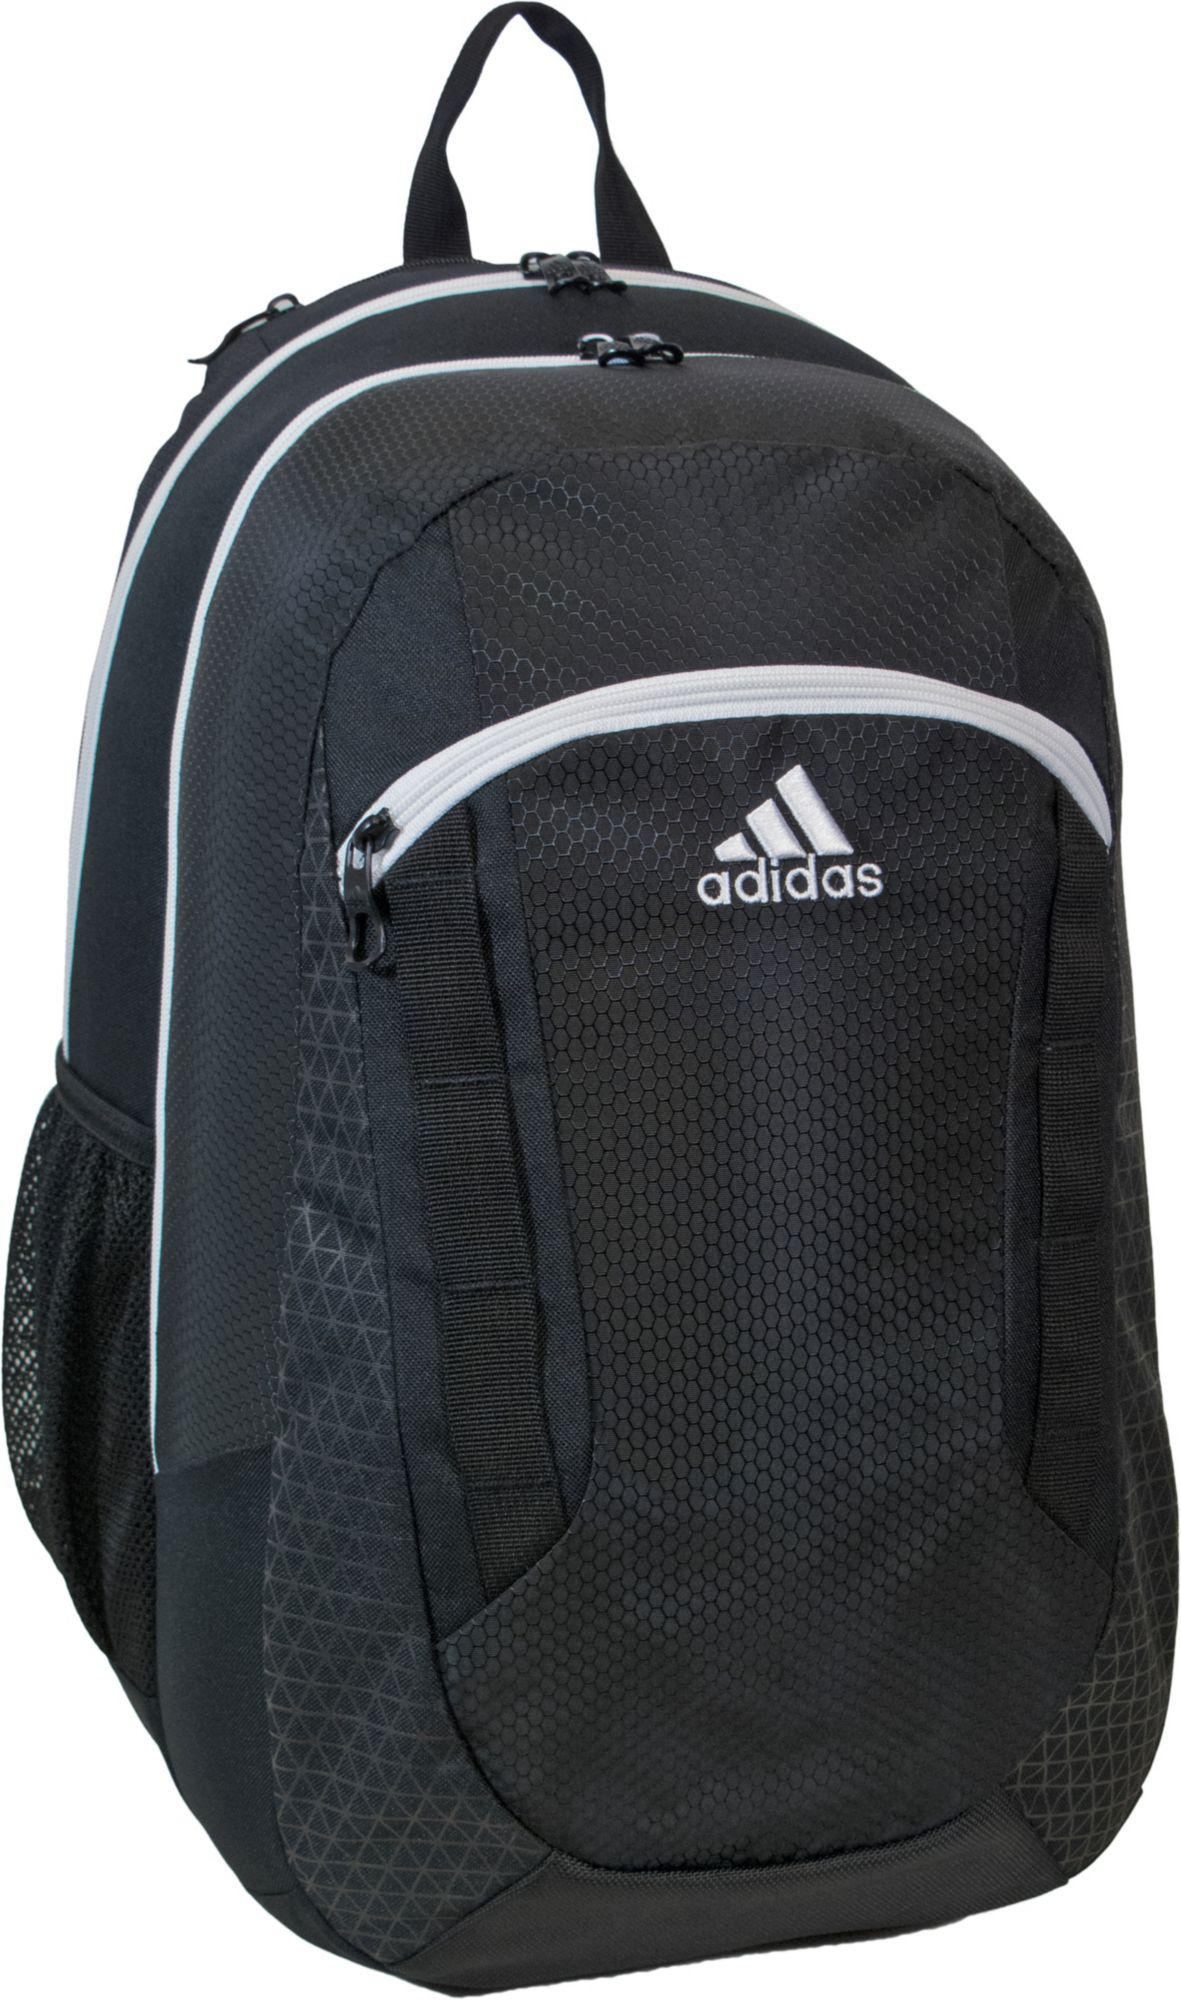 2f10679217 Lyst - adidas Excel Iii Backpack in Black for Men